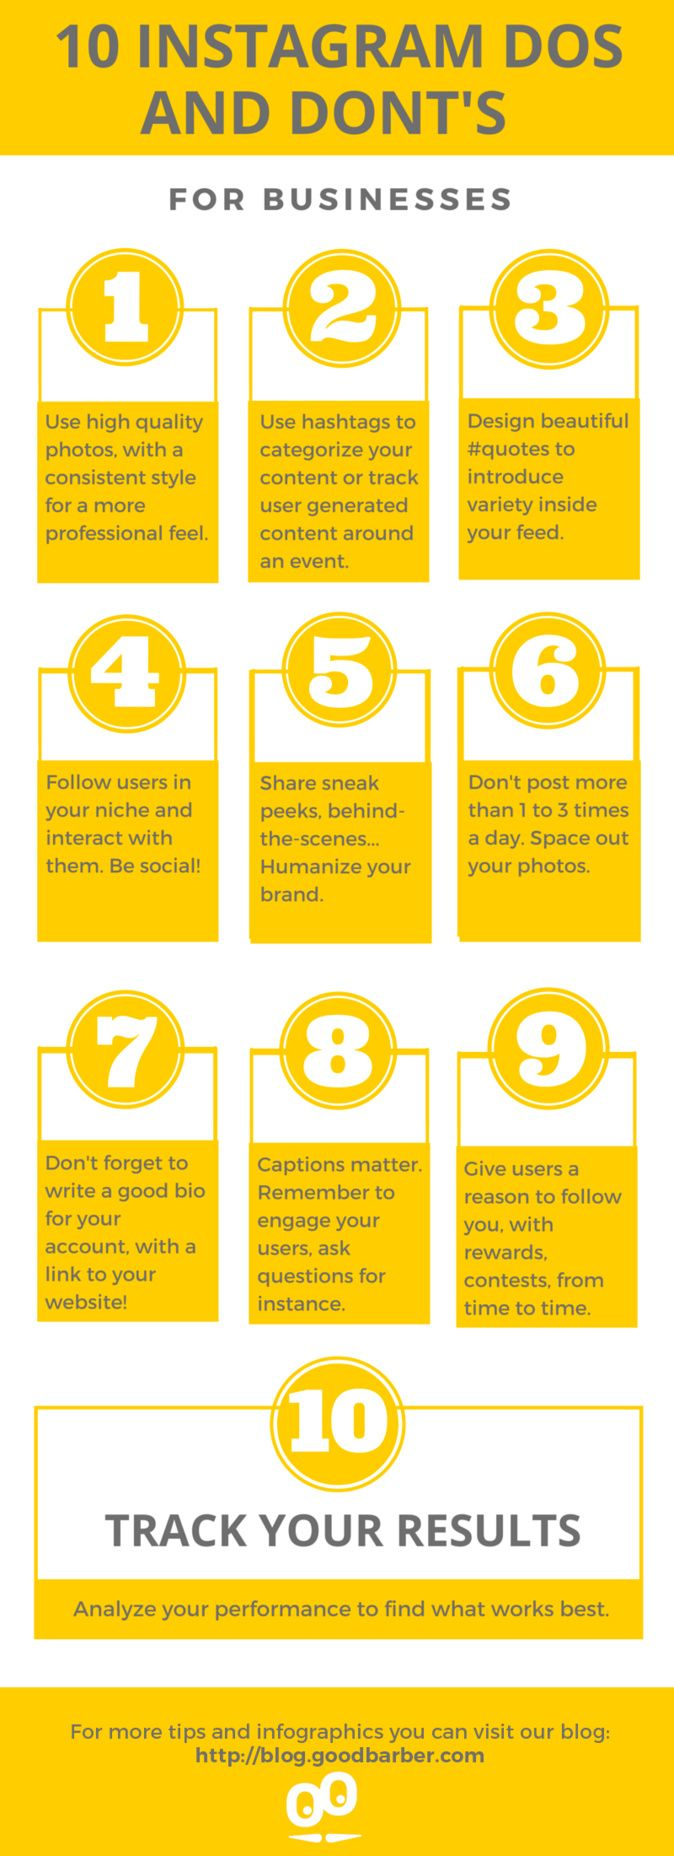 [ Infographic ] 10 Instagram Dos and Don'ts for Businesses #Instagram #socialmedia #engagement #strategy #marketing #Infographic